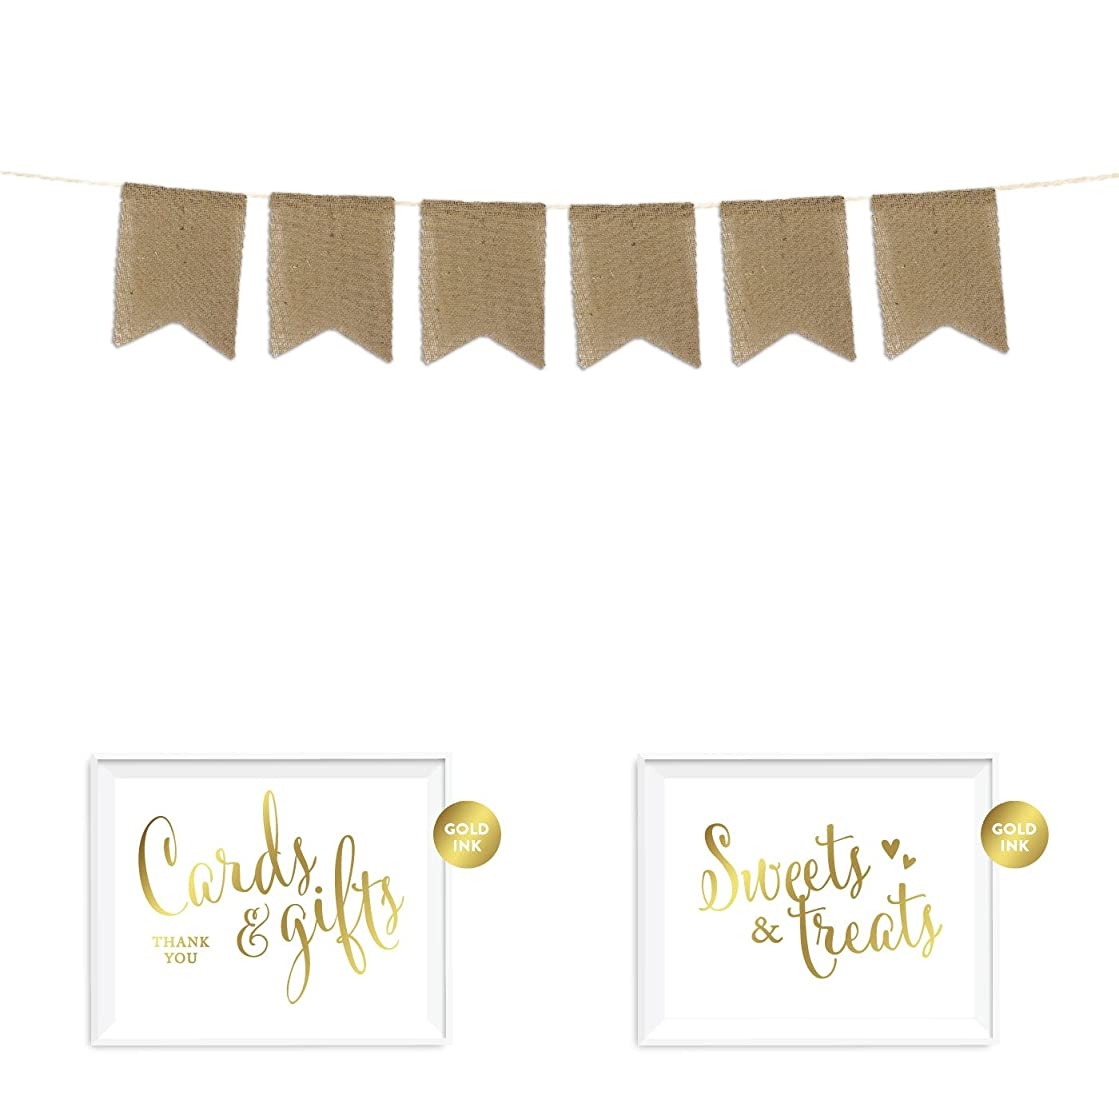 Andaz Press Real Burlap Pennant Hanging Party Banner with Gold Ink Party Signs, 15 Blank Writable Fabric Pennants, Pre-Strung, No Assembly Required, 1-Set, for DIY Personalized Custom Decorations